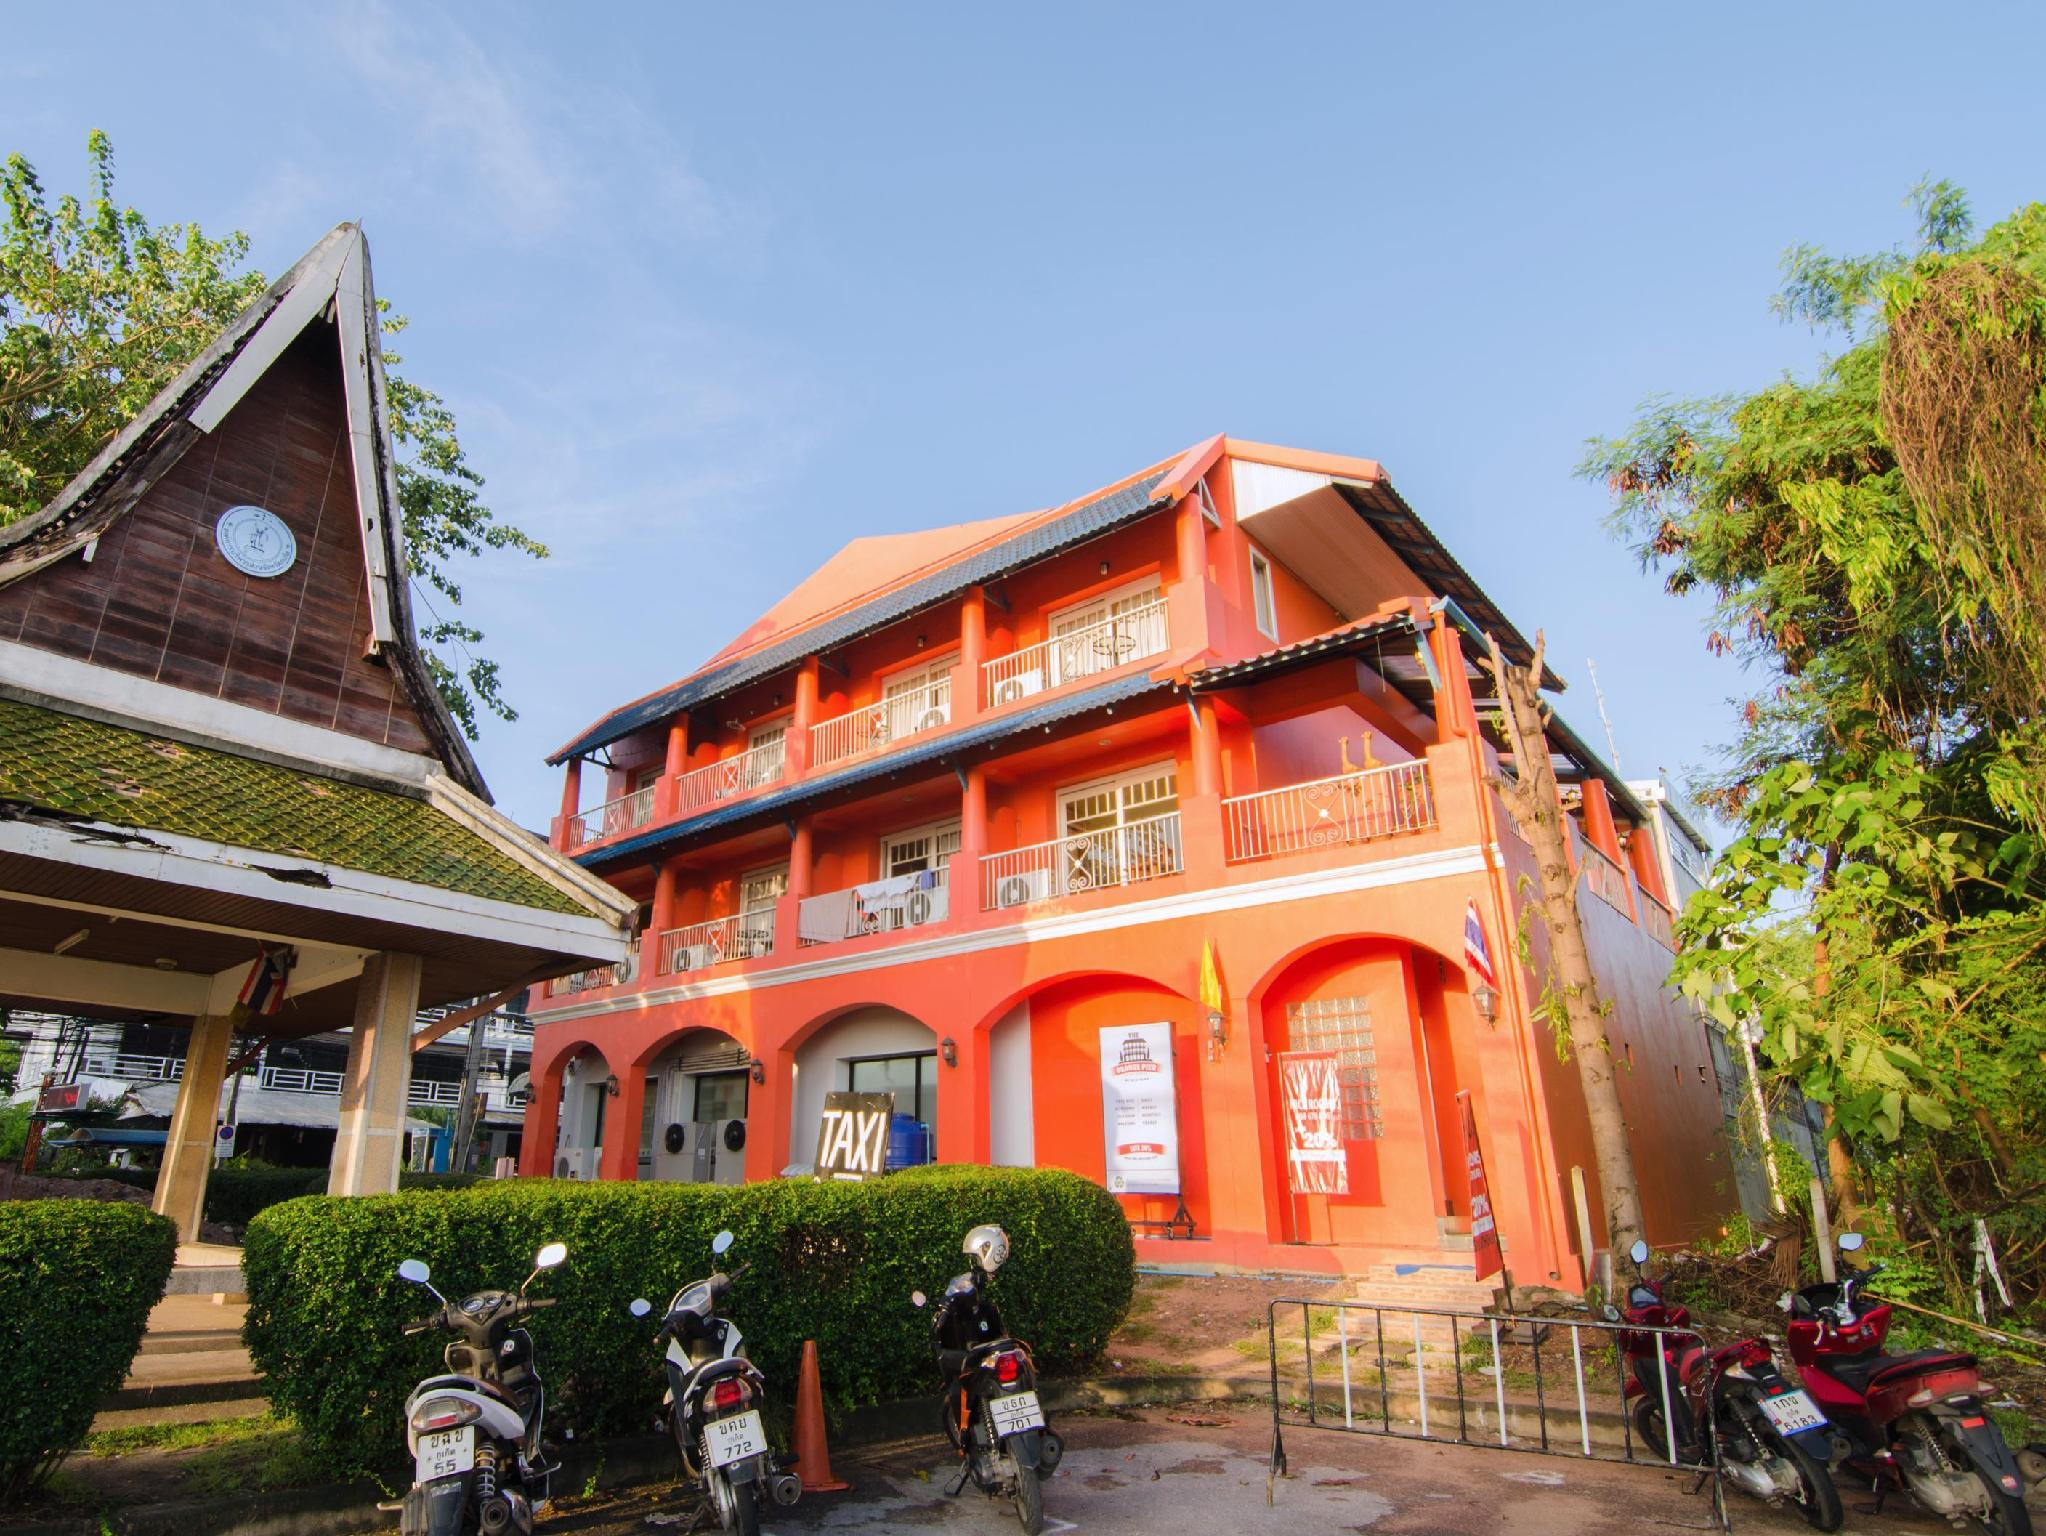 The Orange Pier Guesthouse - Hotell och Boende i Thailand i Asien